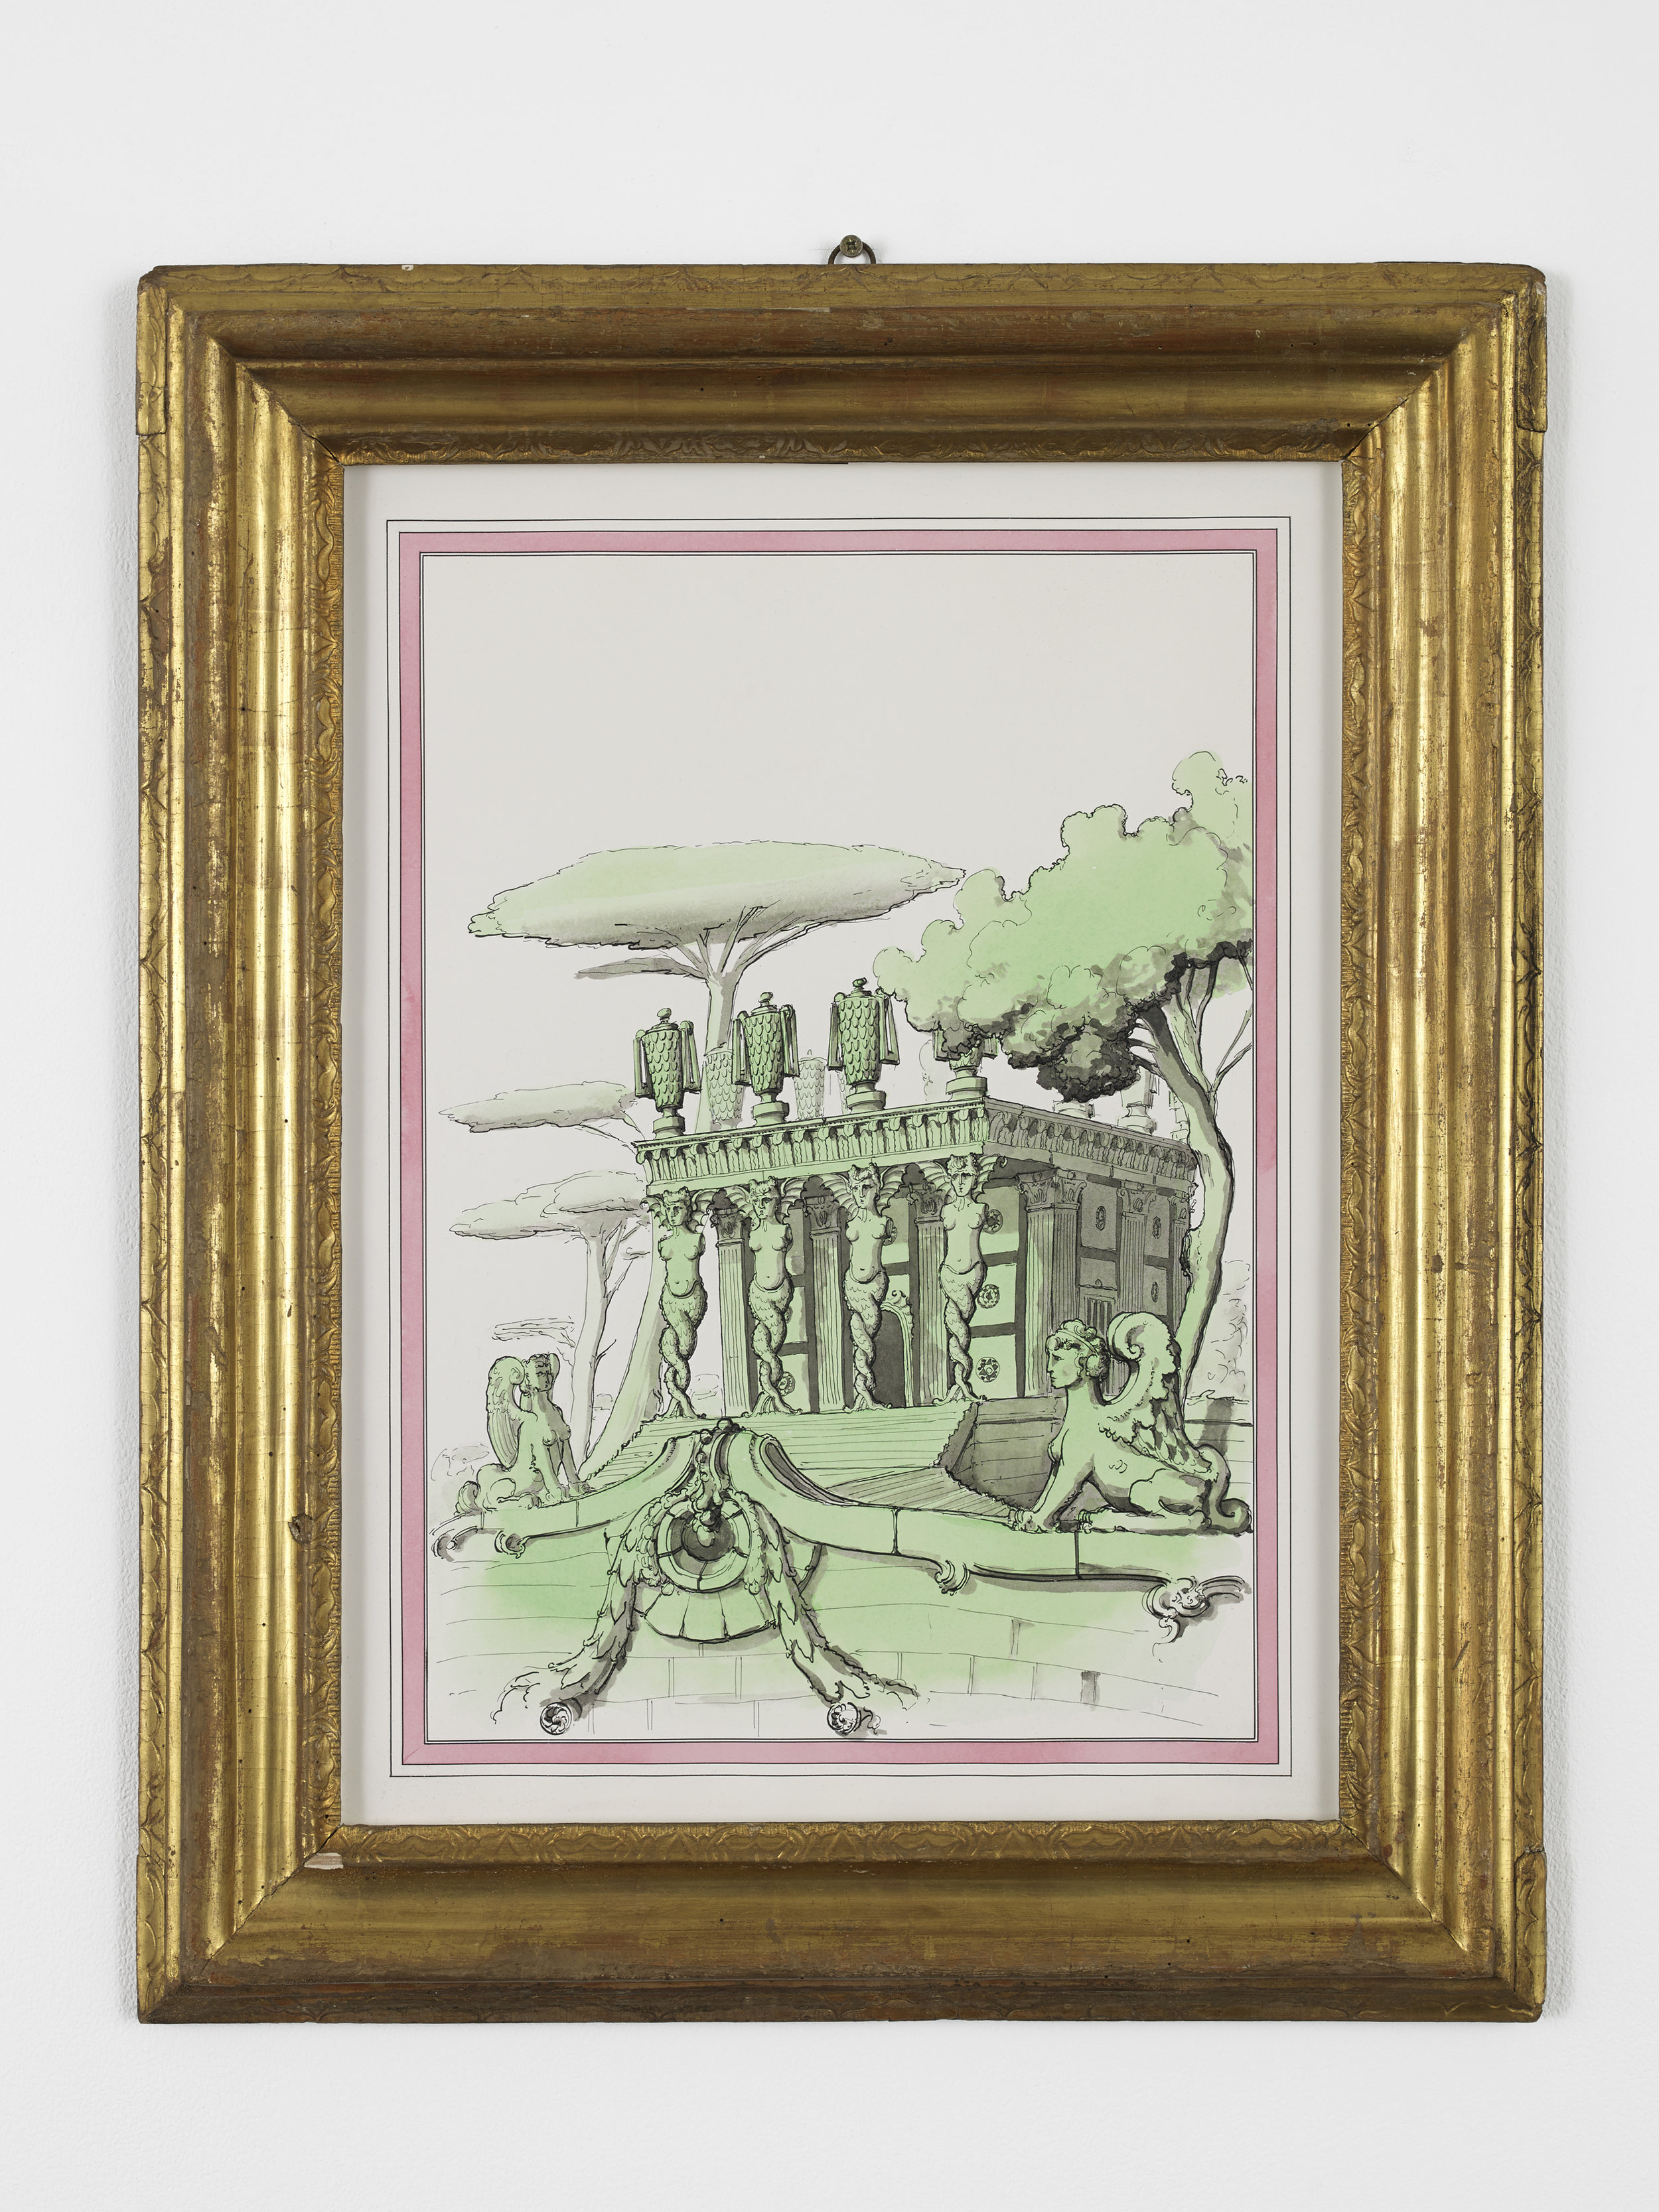 P­ablo Bronstein,   Mannerist Assemblage with fragments from an Alberti structure - Temple of Furies , 2015, Ink and watercolour on paper, artist's frame, 74.5 x 59.8 cm